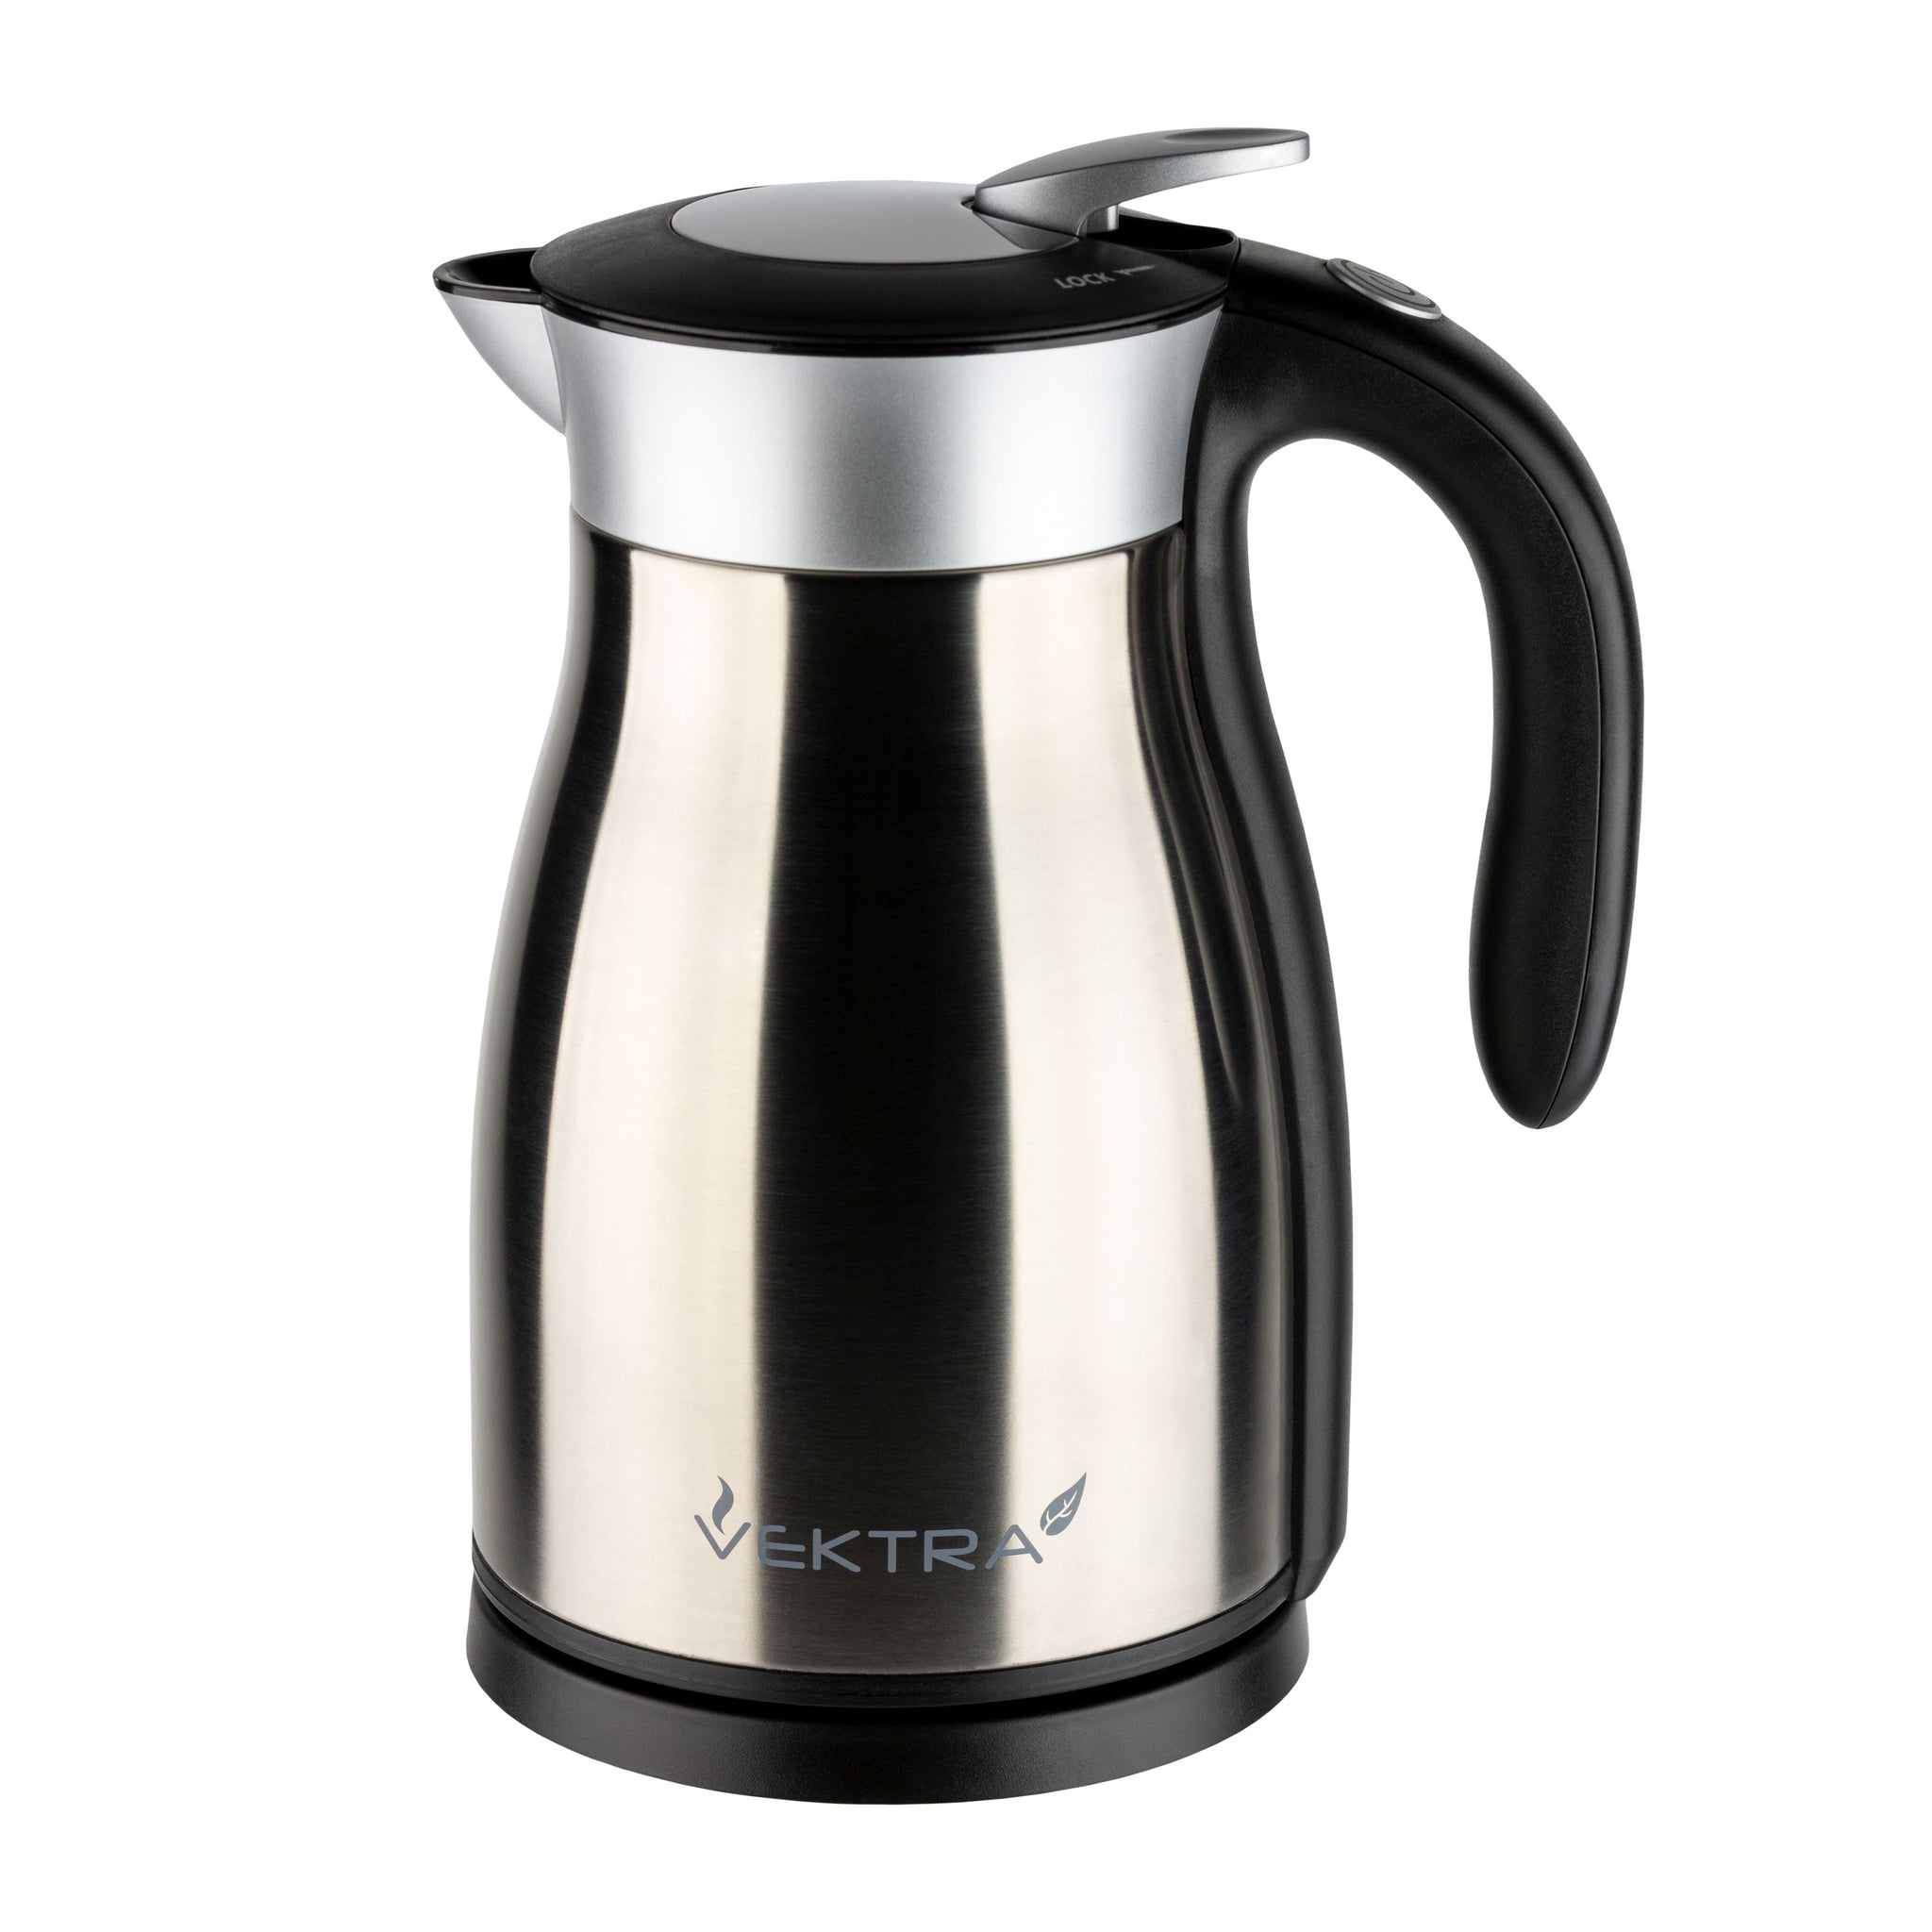 Vektra 1.7L Stainless Steel